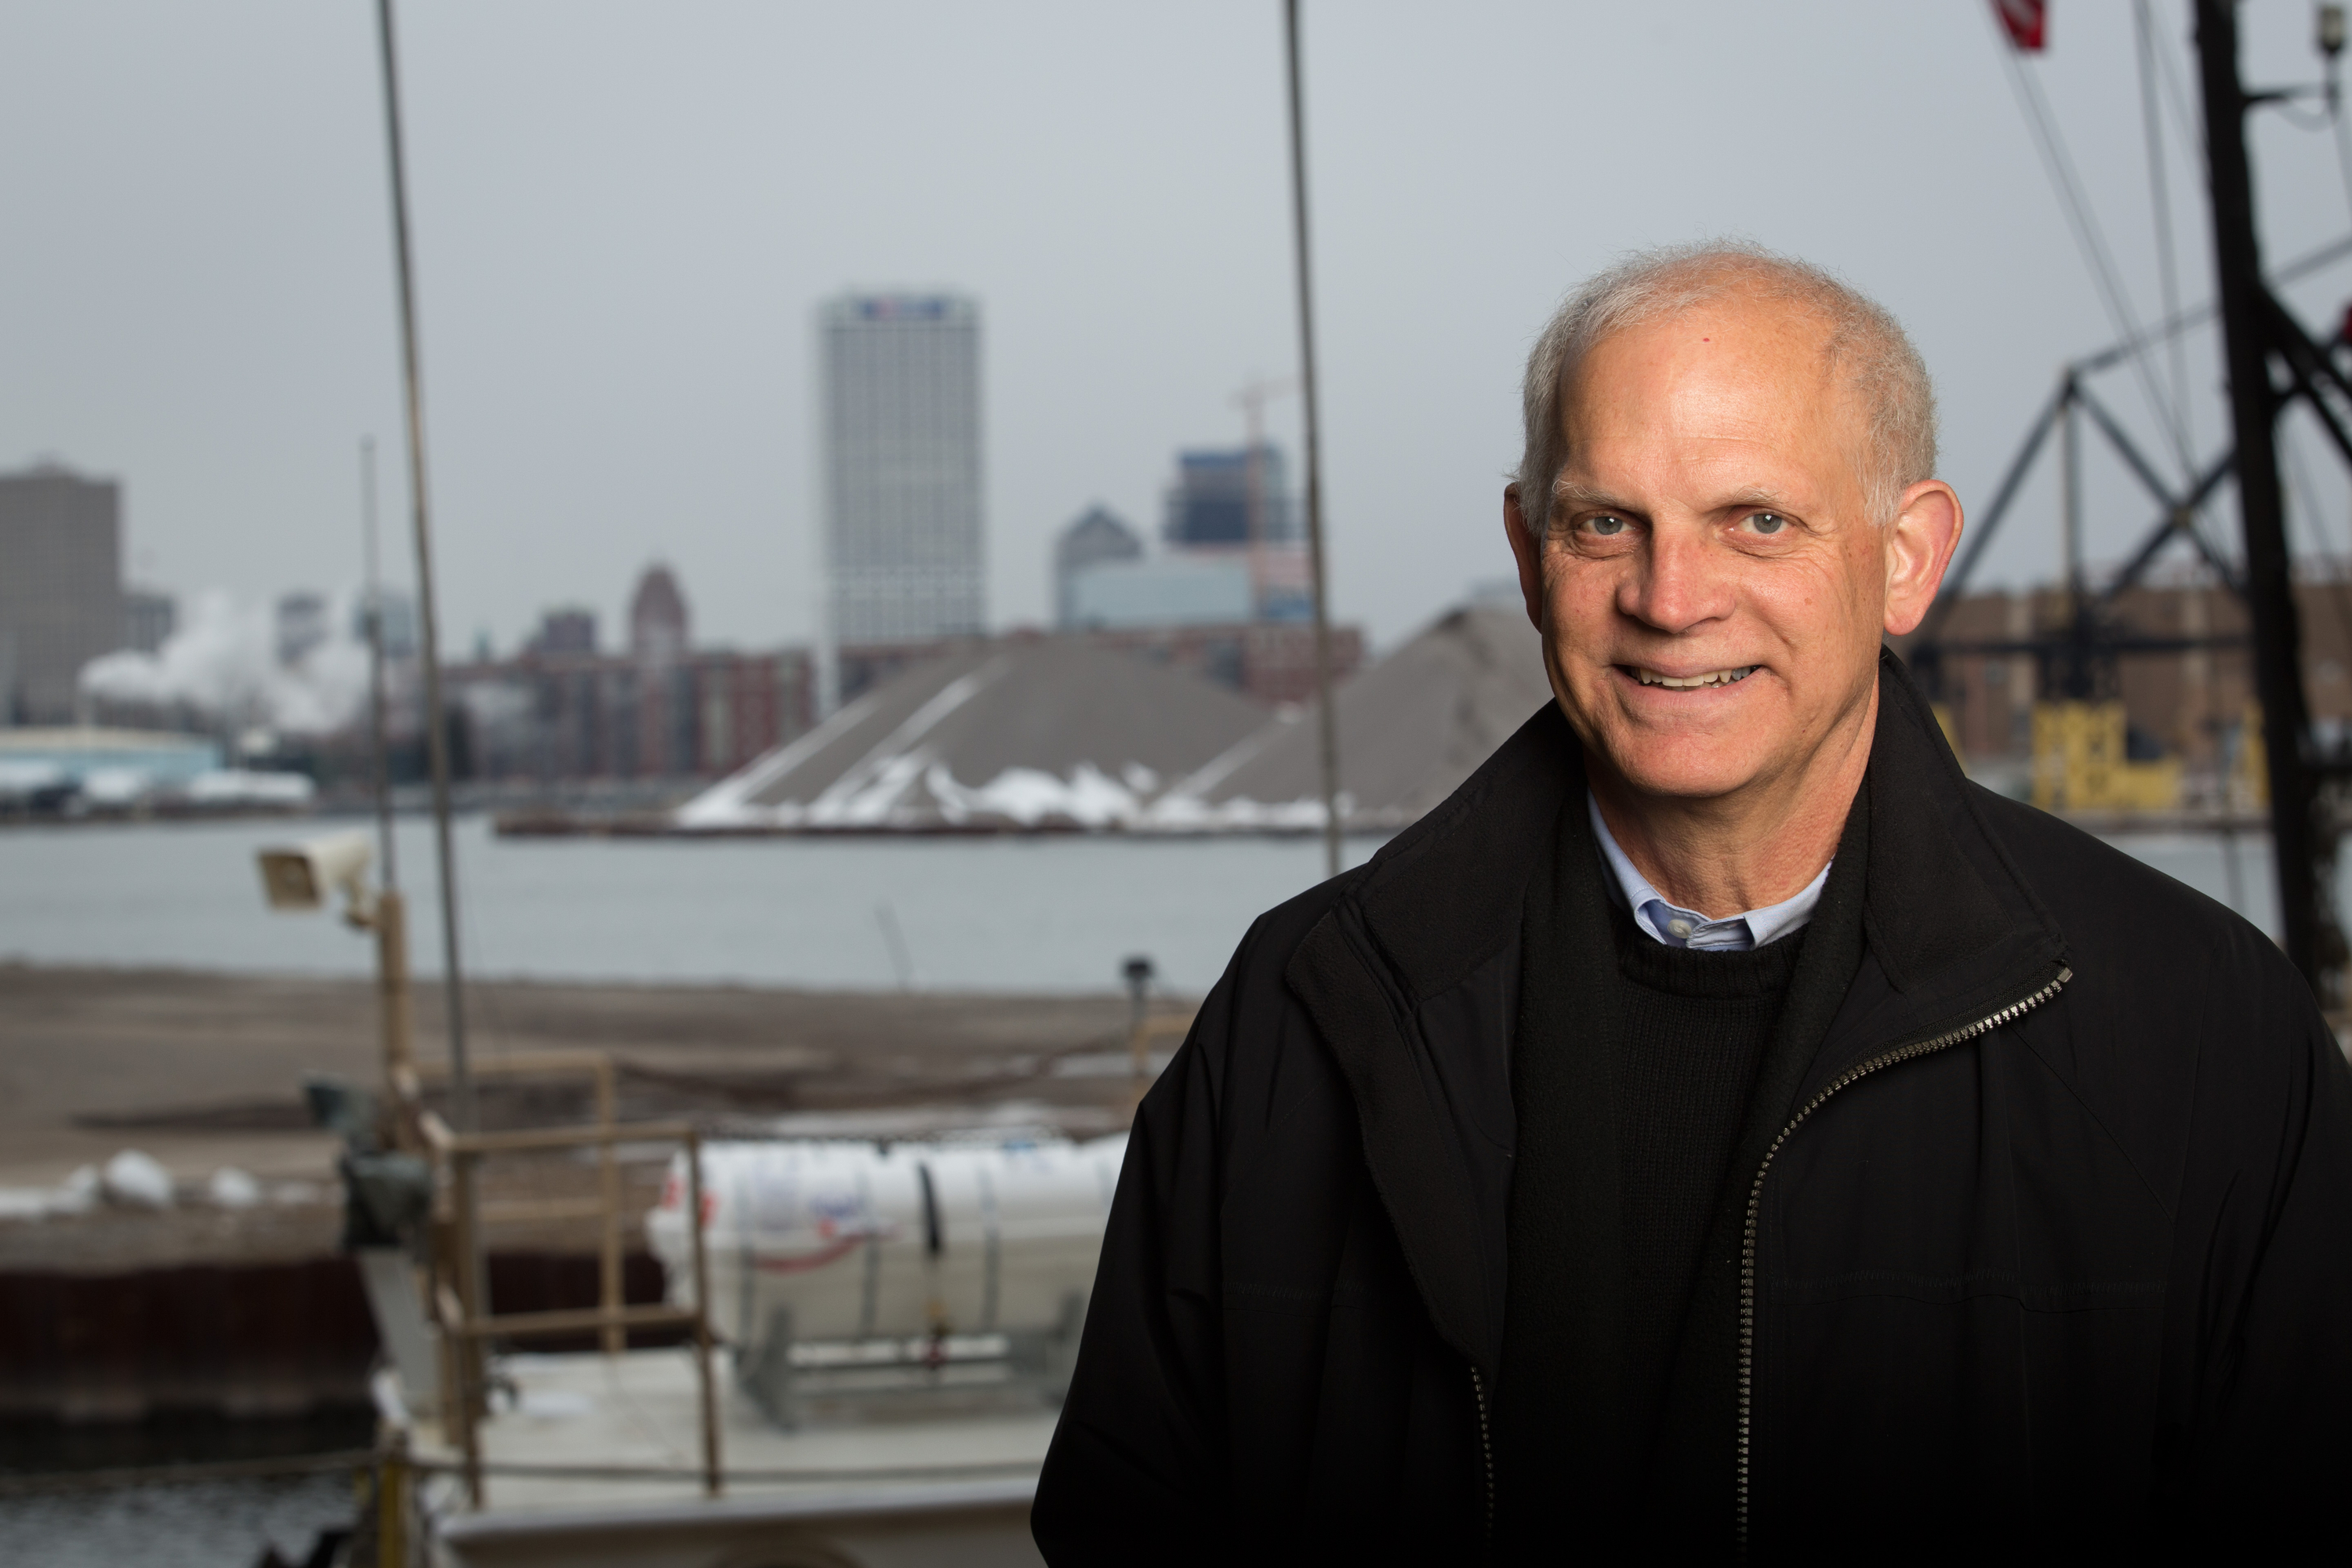 UWM Freshwater Sciences dean Val Klump named to Great Lakes Advisory Board